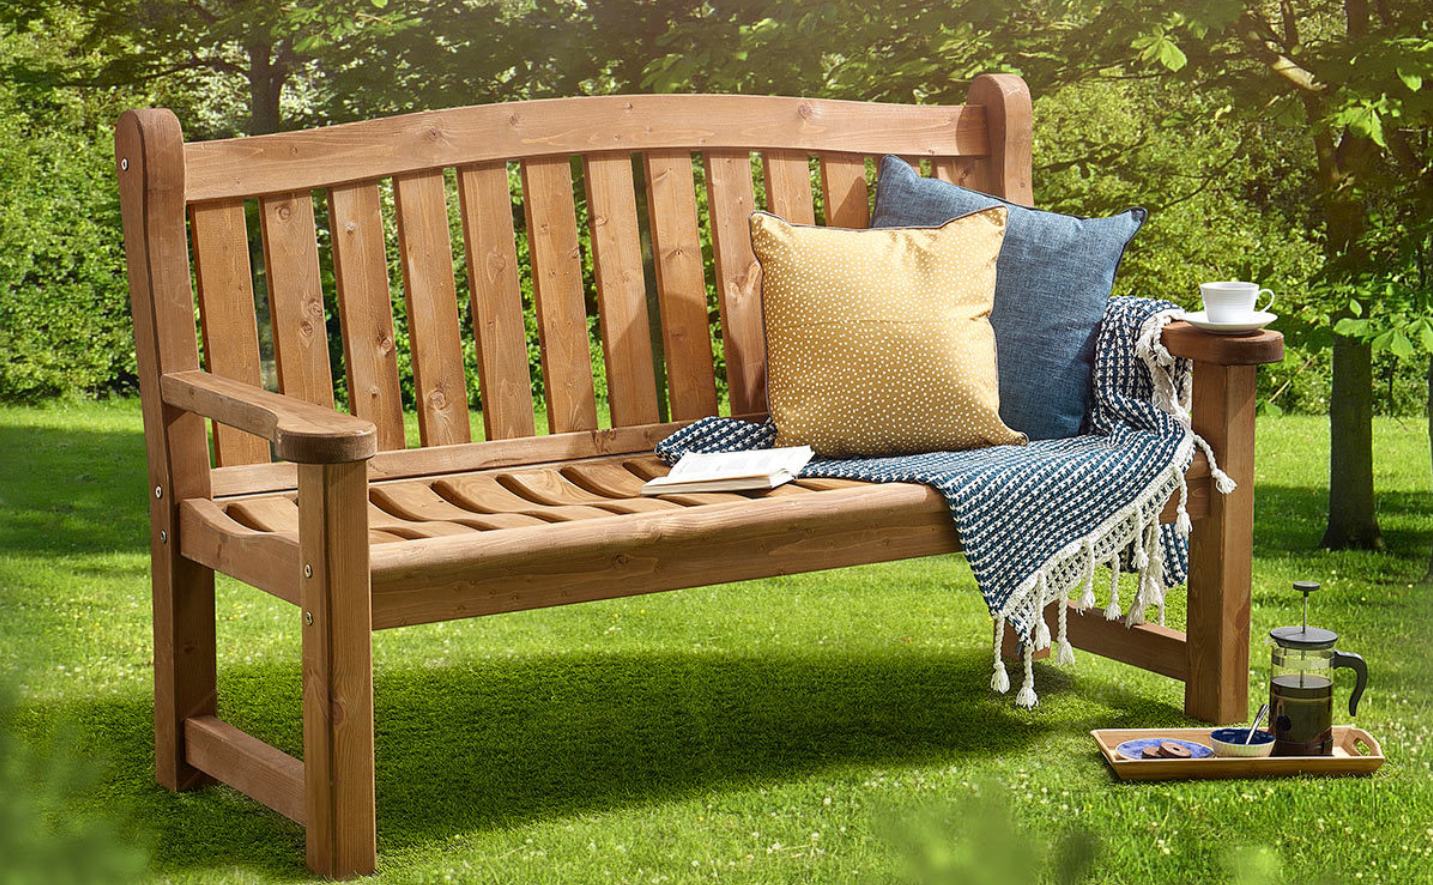 33+ Wooden garden benches for sale information